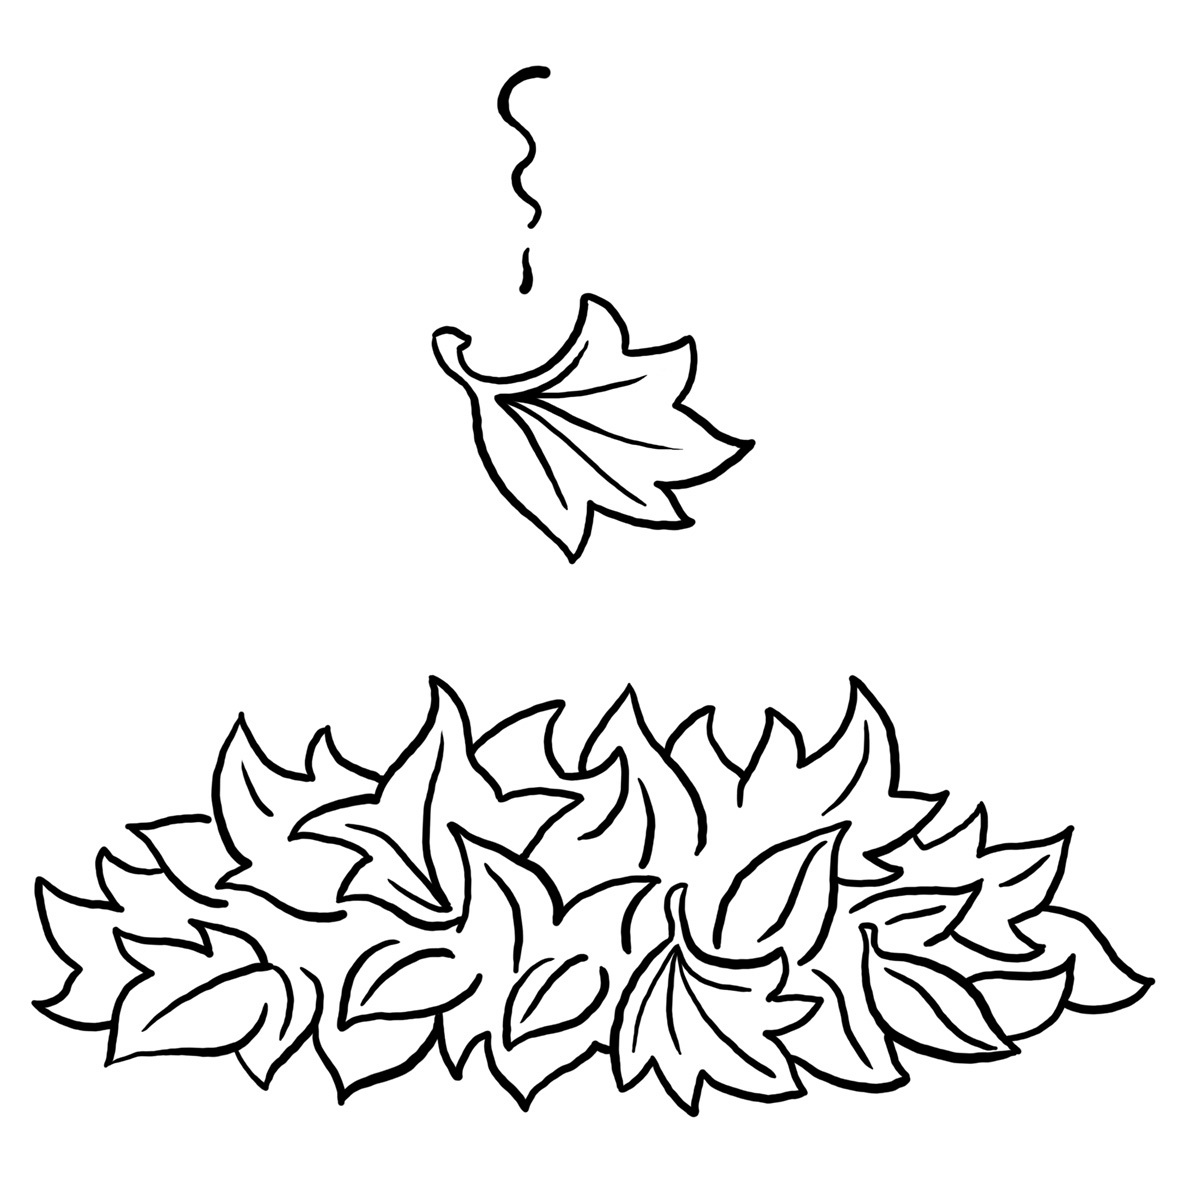 Free Printable Leaf Coloring Pages For Kids in 2020 (With images ... | 1200x1177